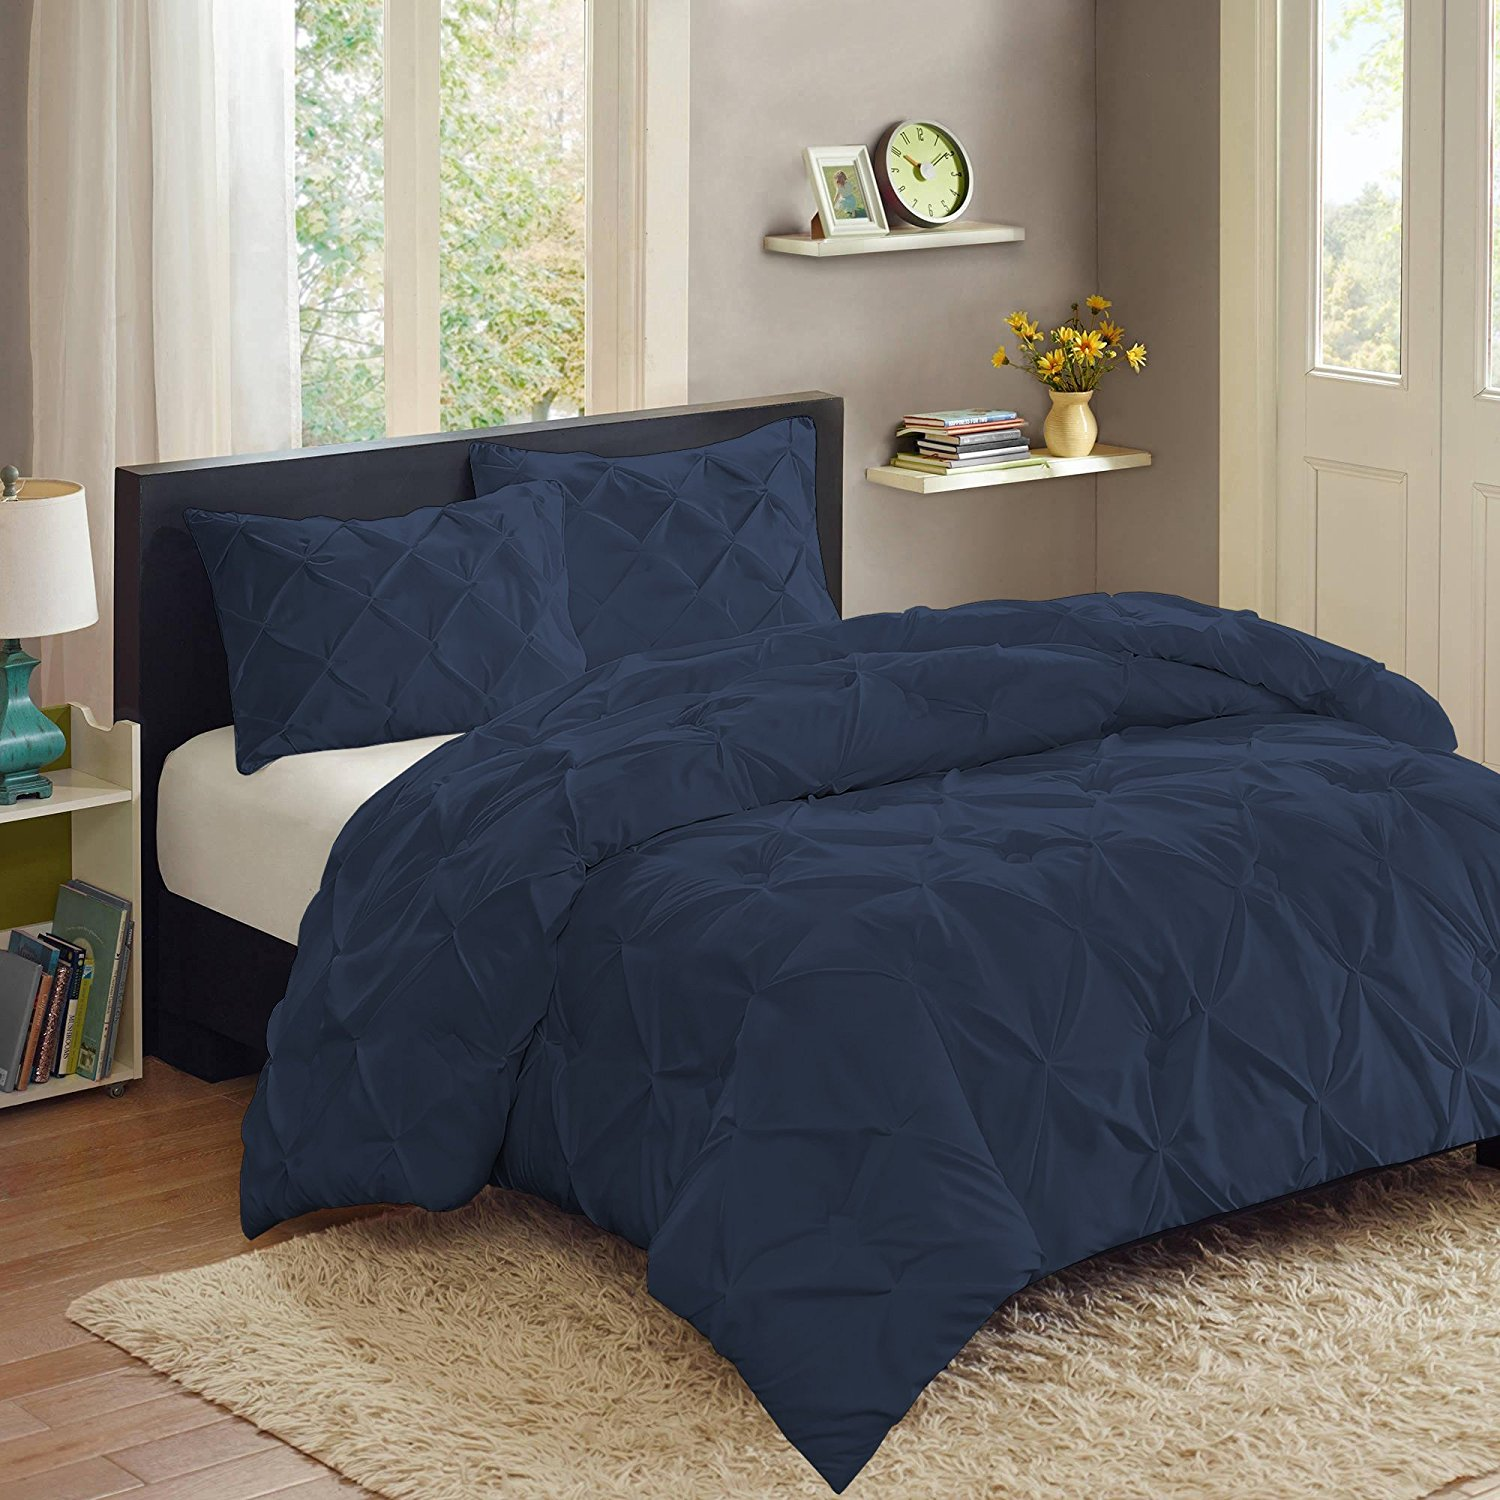 Sweet Home Collection 3 Piece PP Luxury Pinch Pleat Pintuck Fashion Duvet Set, King, Navy